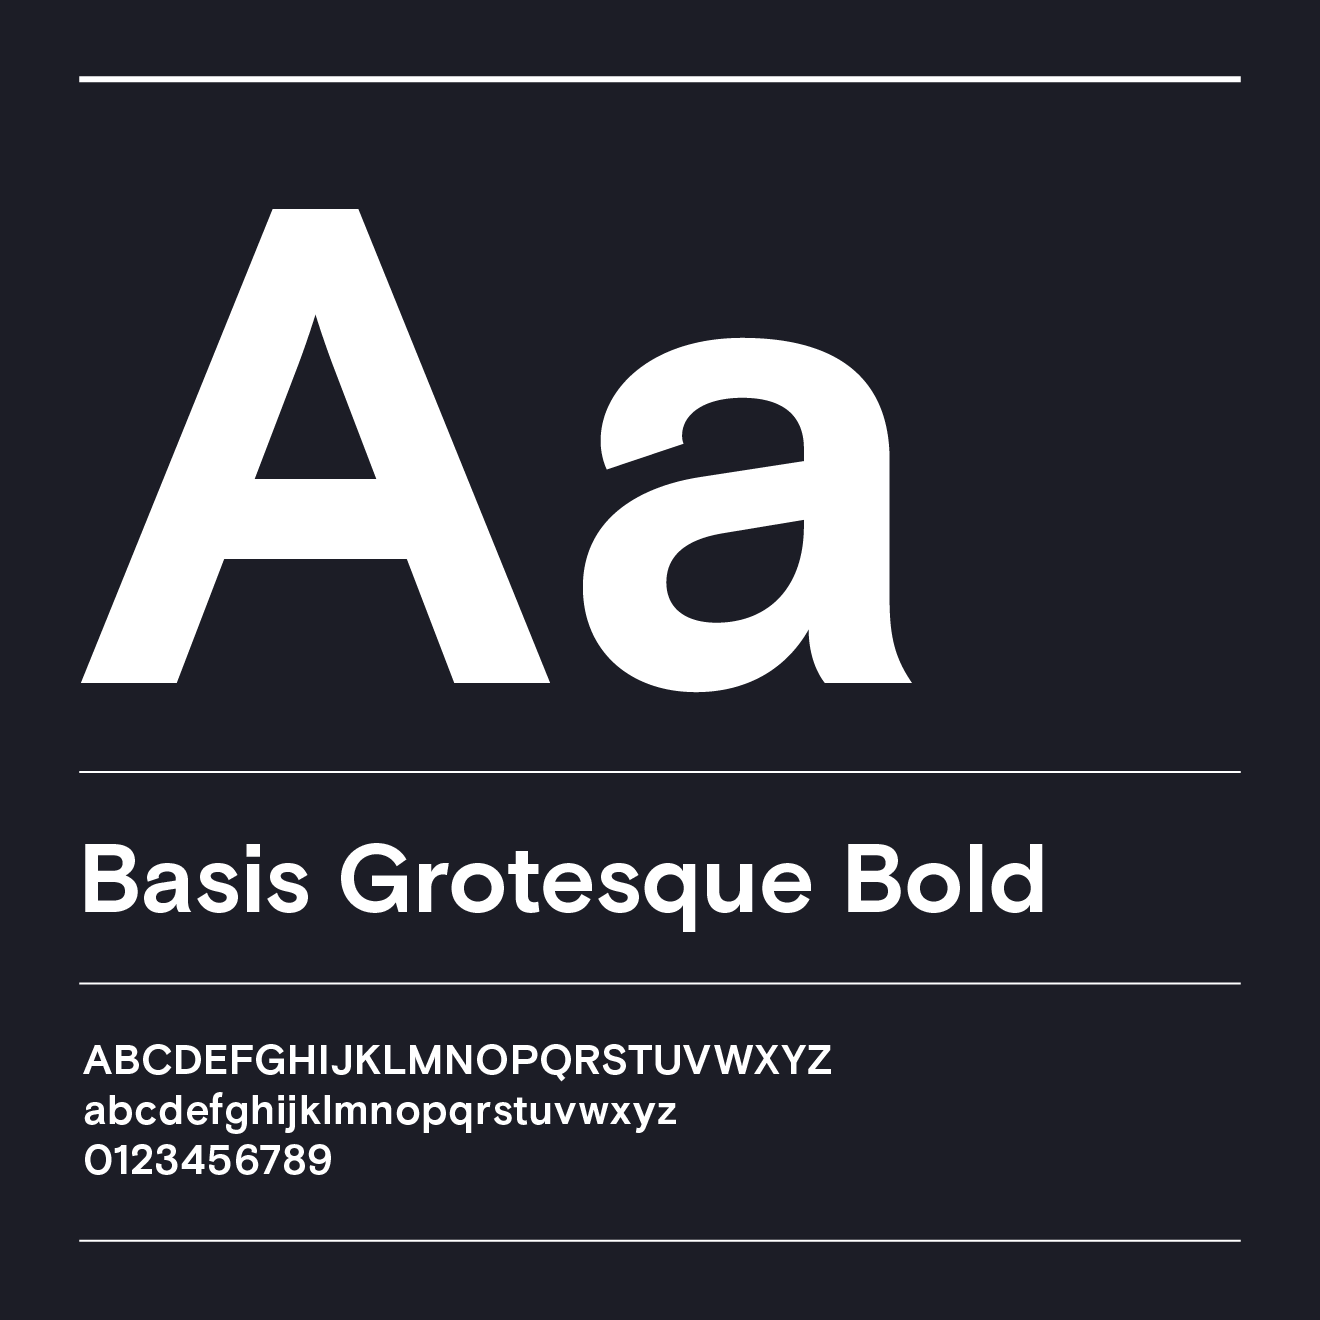 White text of the letter A over a black background in Basis Grotesque Bold font